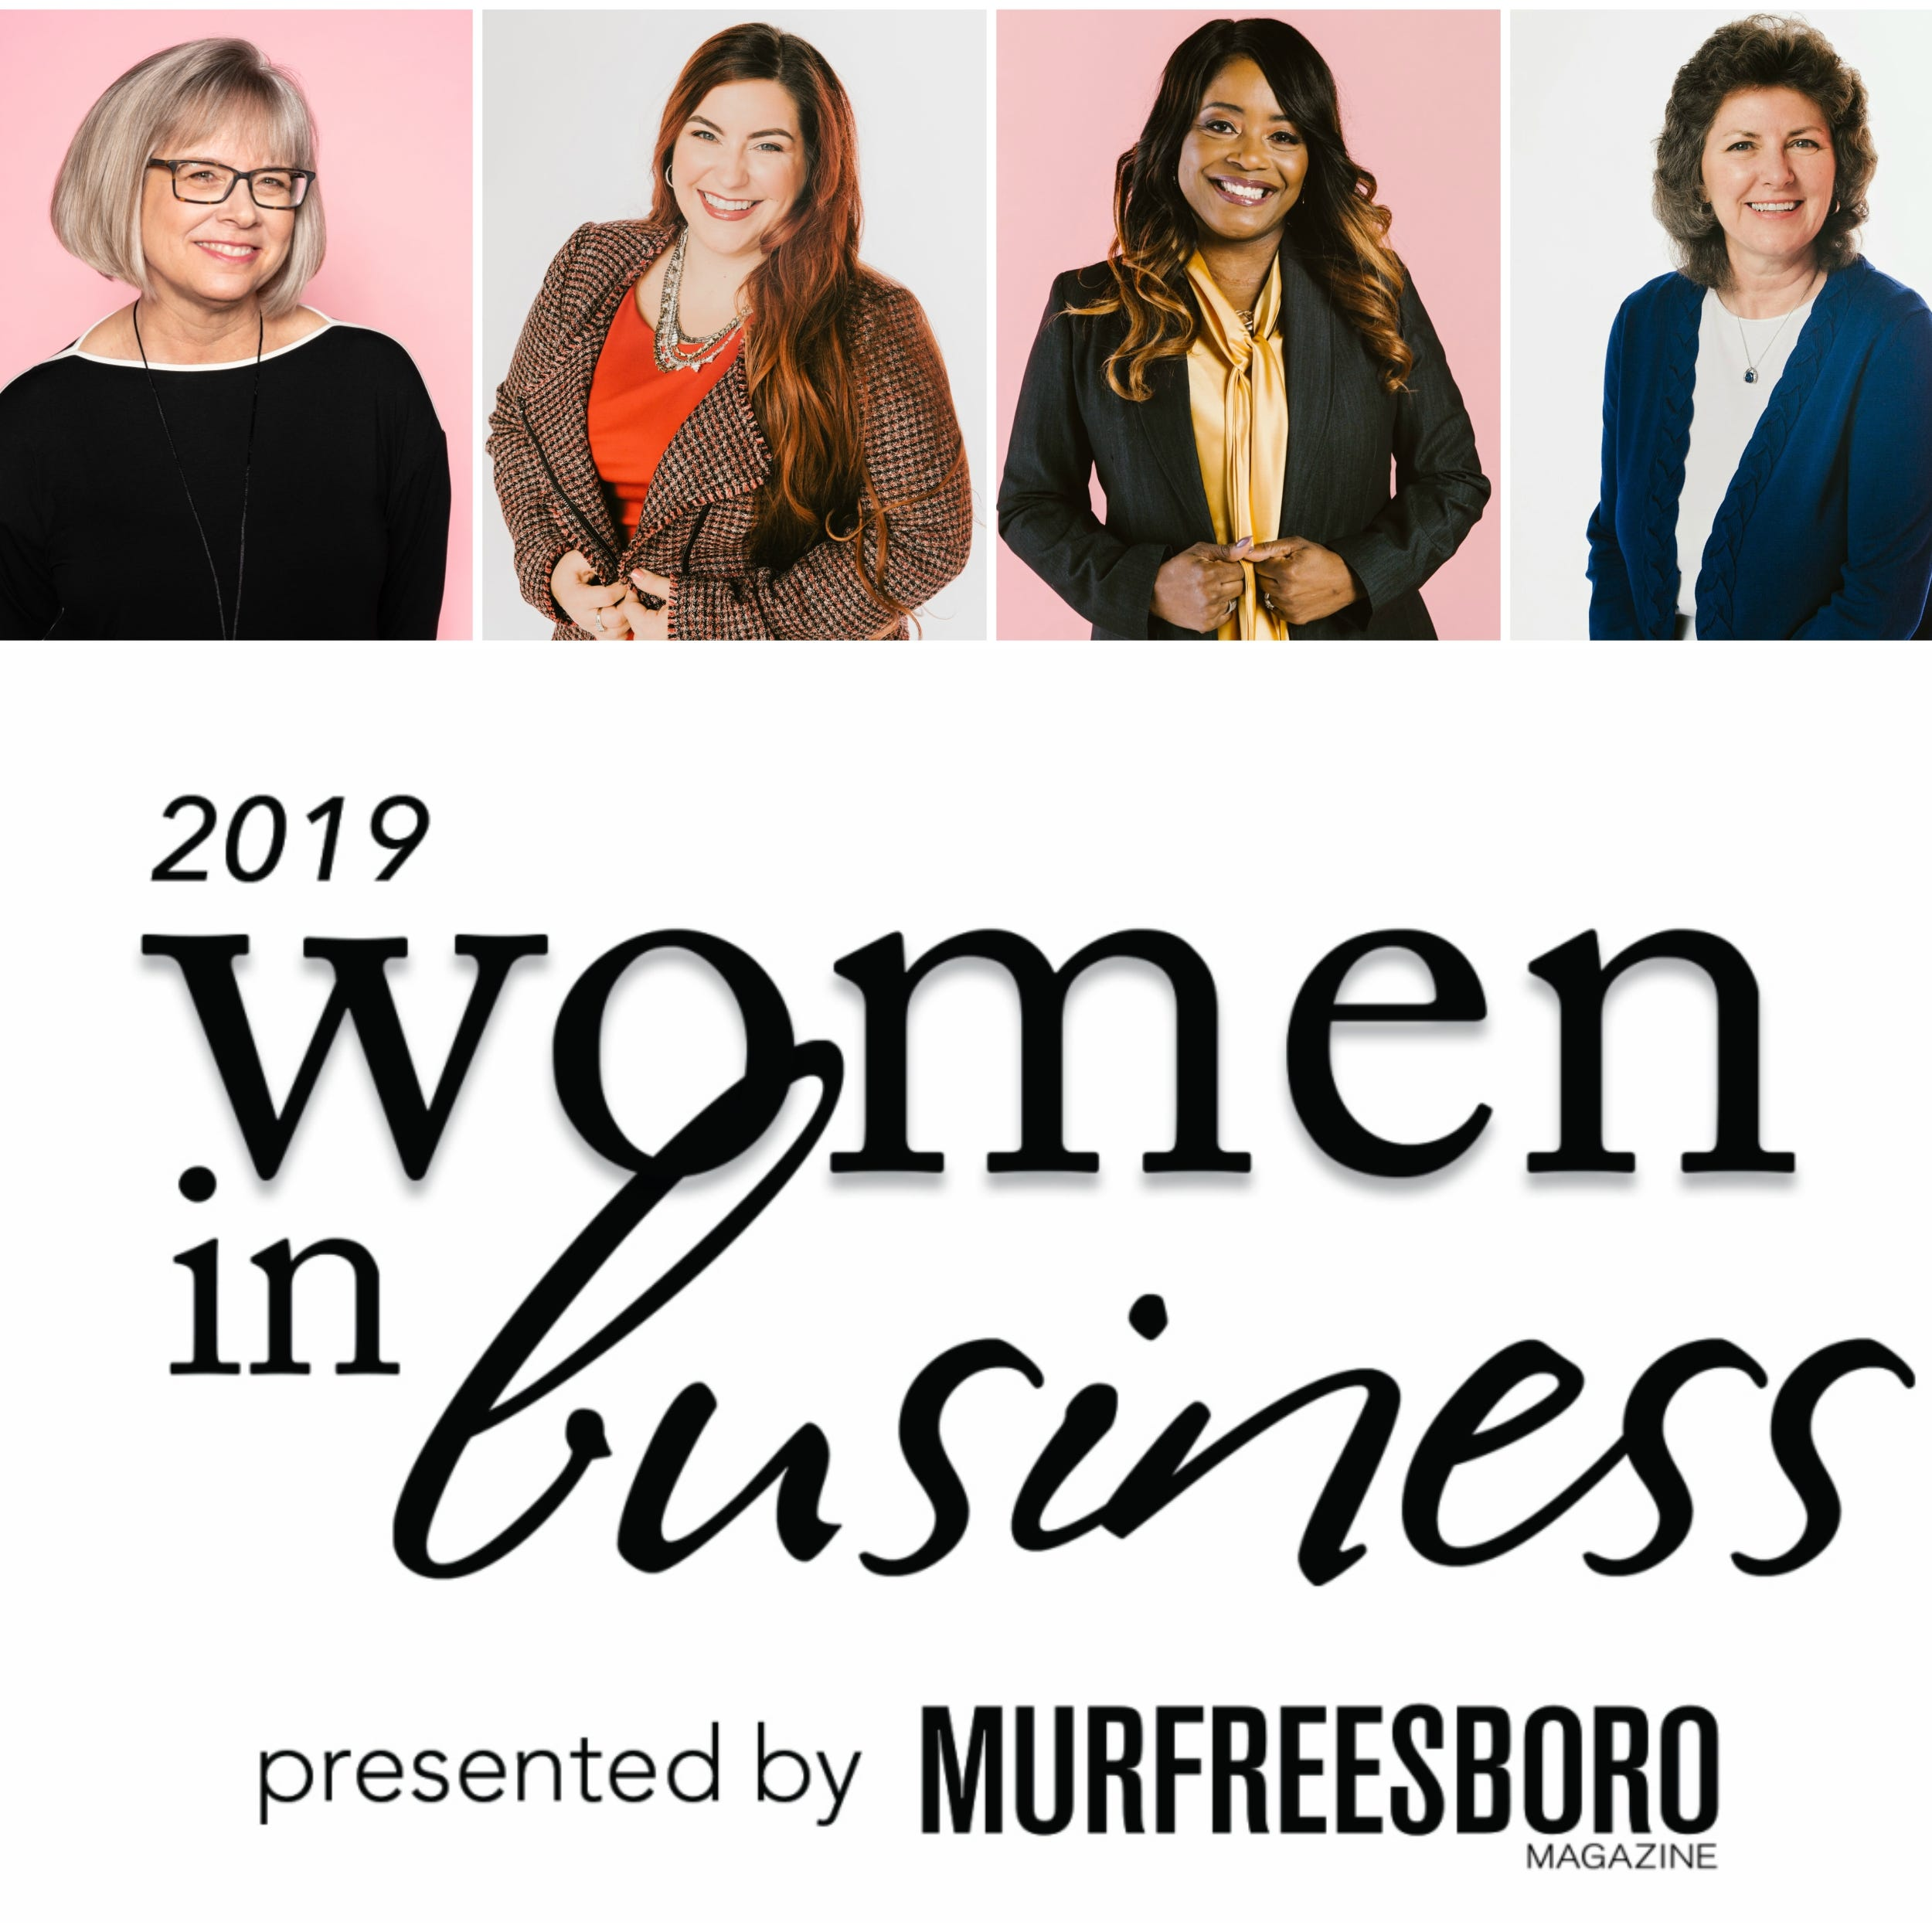 Murfreesboro Magazine's 2019 Women in Business honorees change lives through work, service